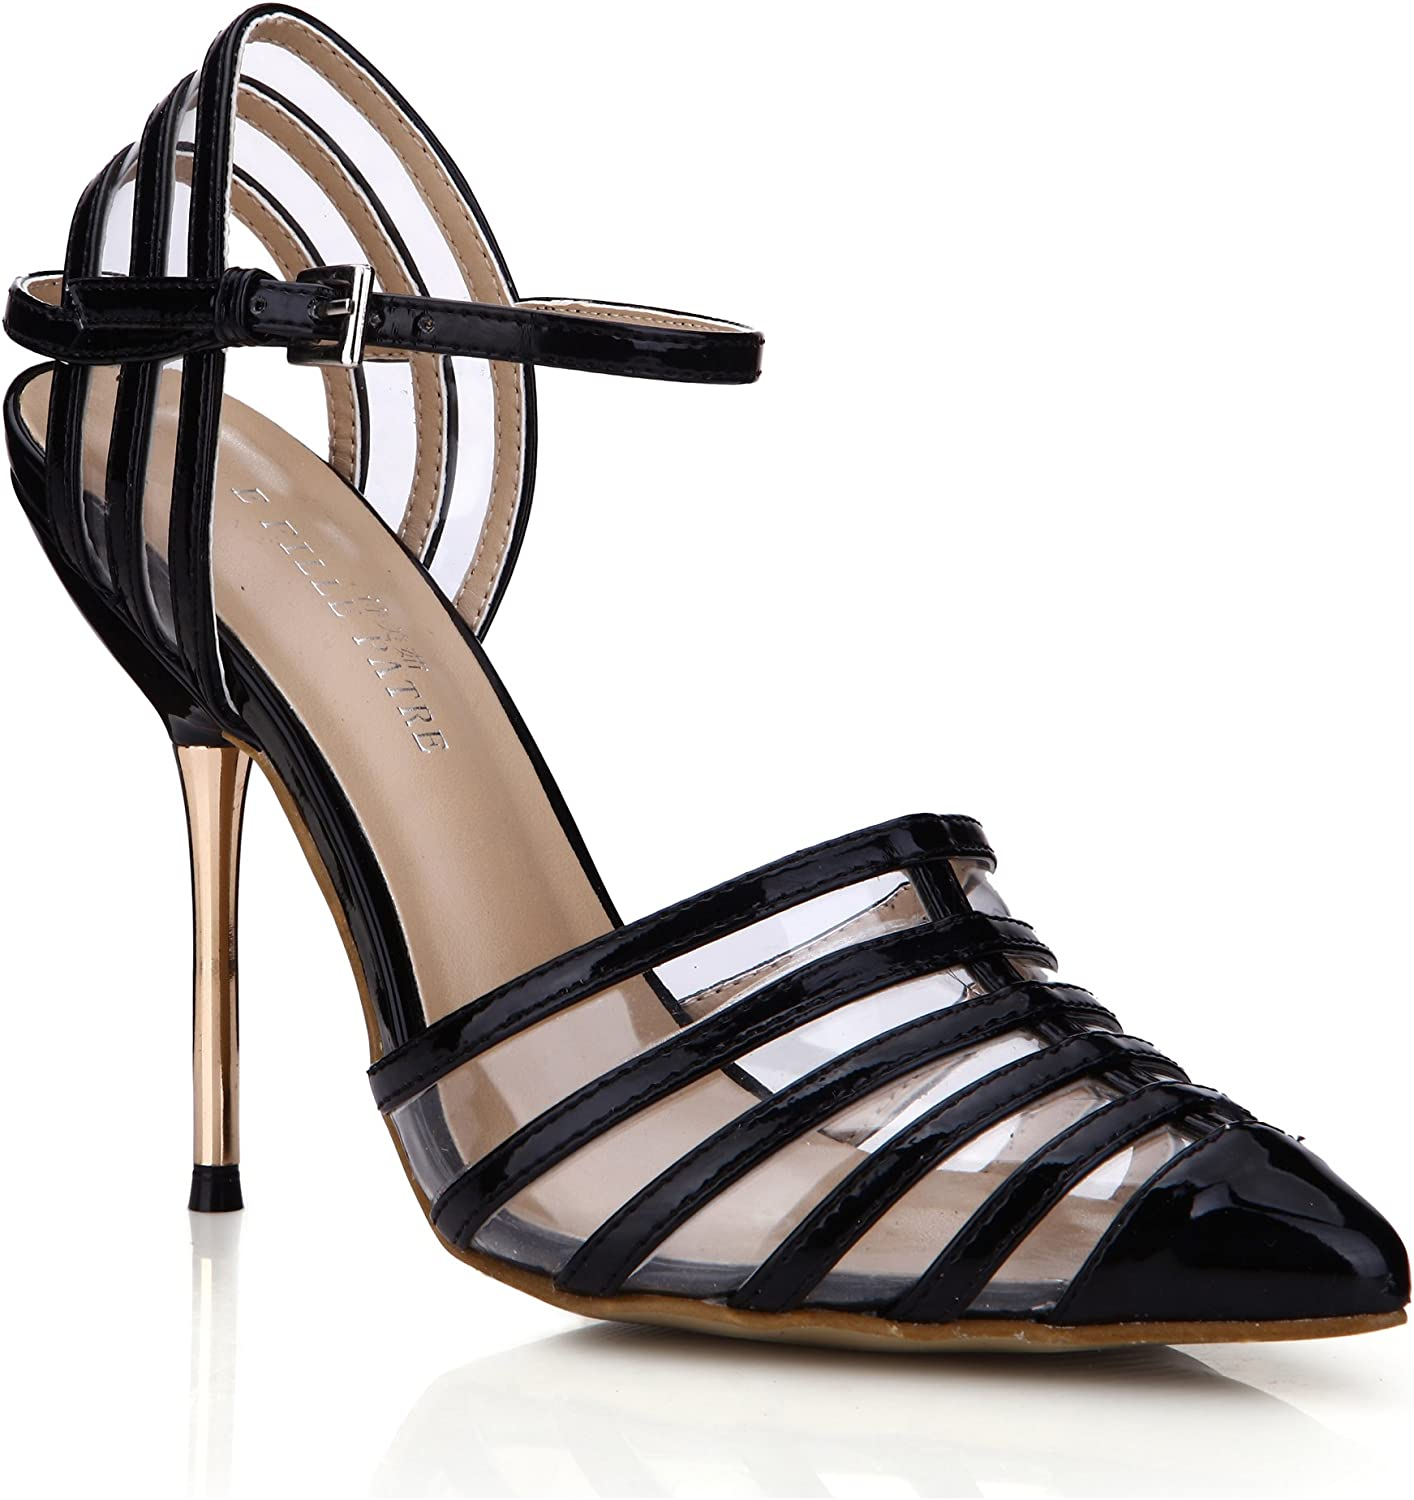 Dolphin Women's Black Hollow Point Toe Pumps High Heel Sandals Wrok School Prom Party Stiletto SM00048